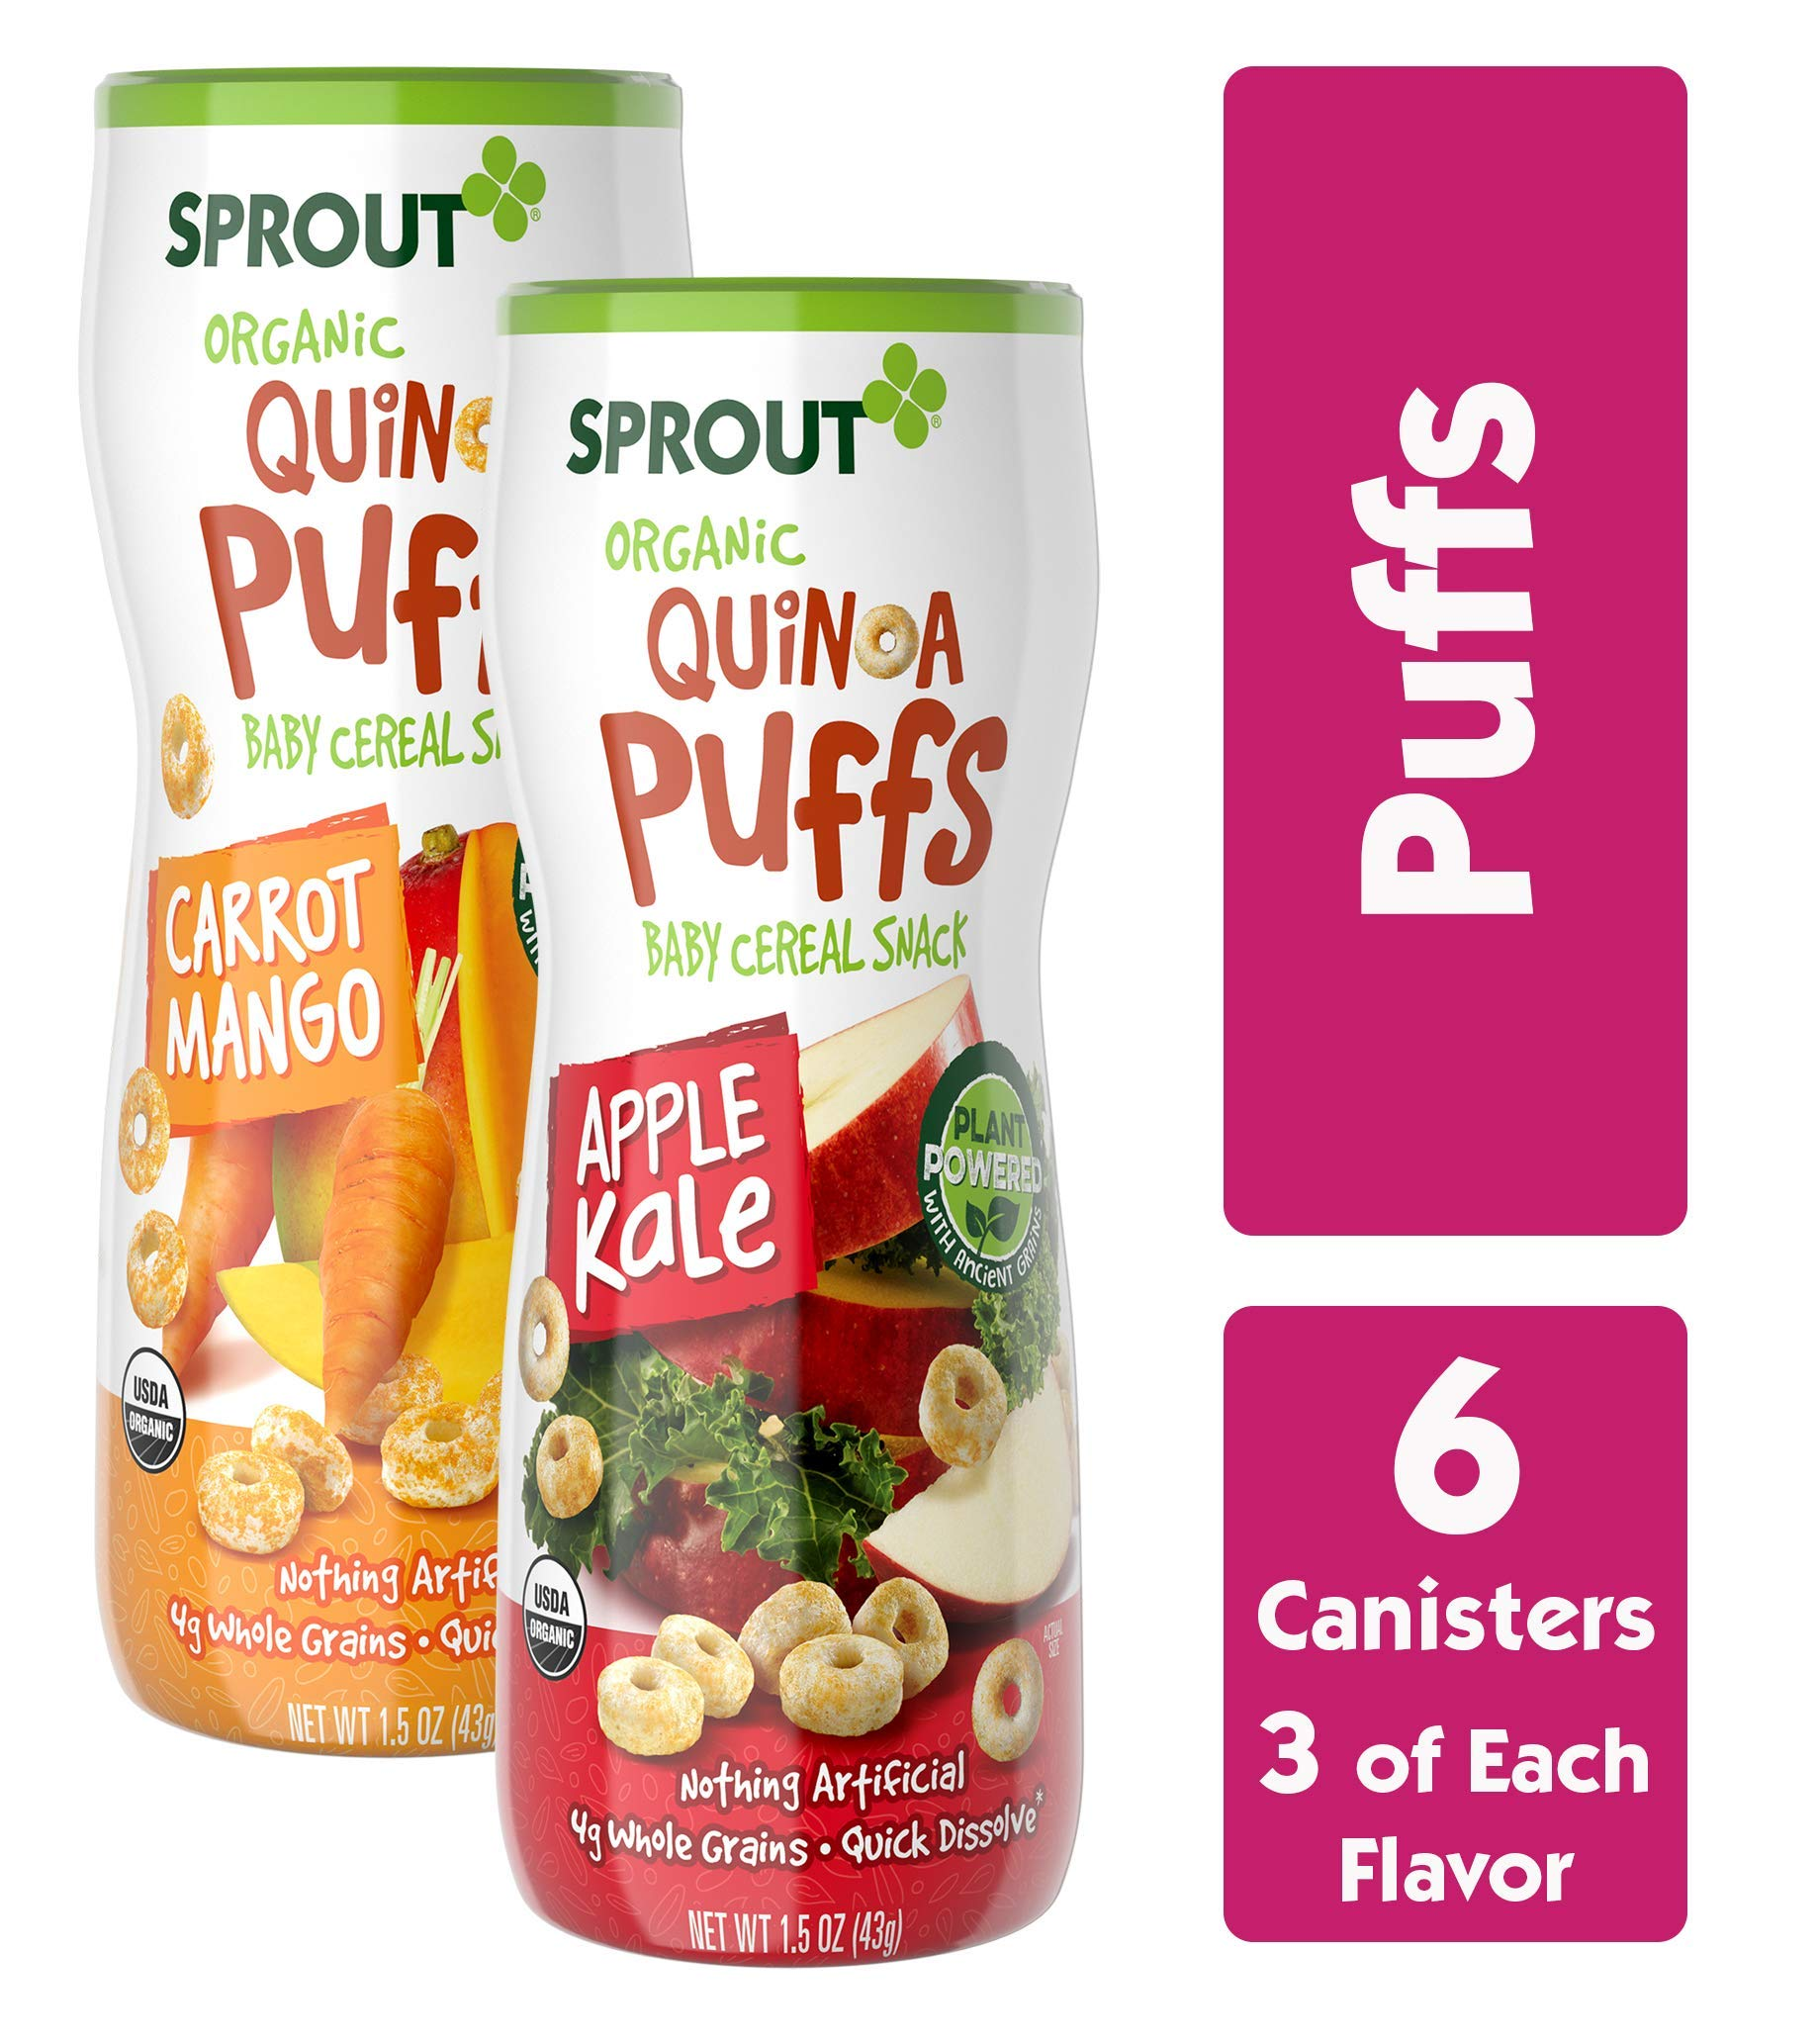 Sprout Organic Quinoa Puffs Baby Snacks, Variety Pack, 1.5 Ounce Canister (Pack of 6) 3 of Each: Carrot Mango & Apple Kale by Sprout